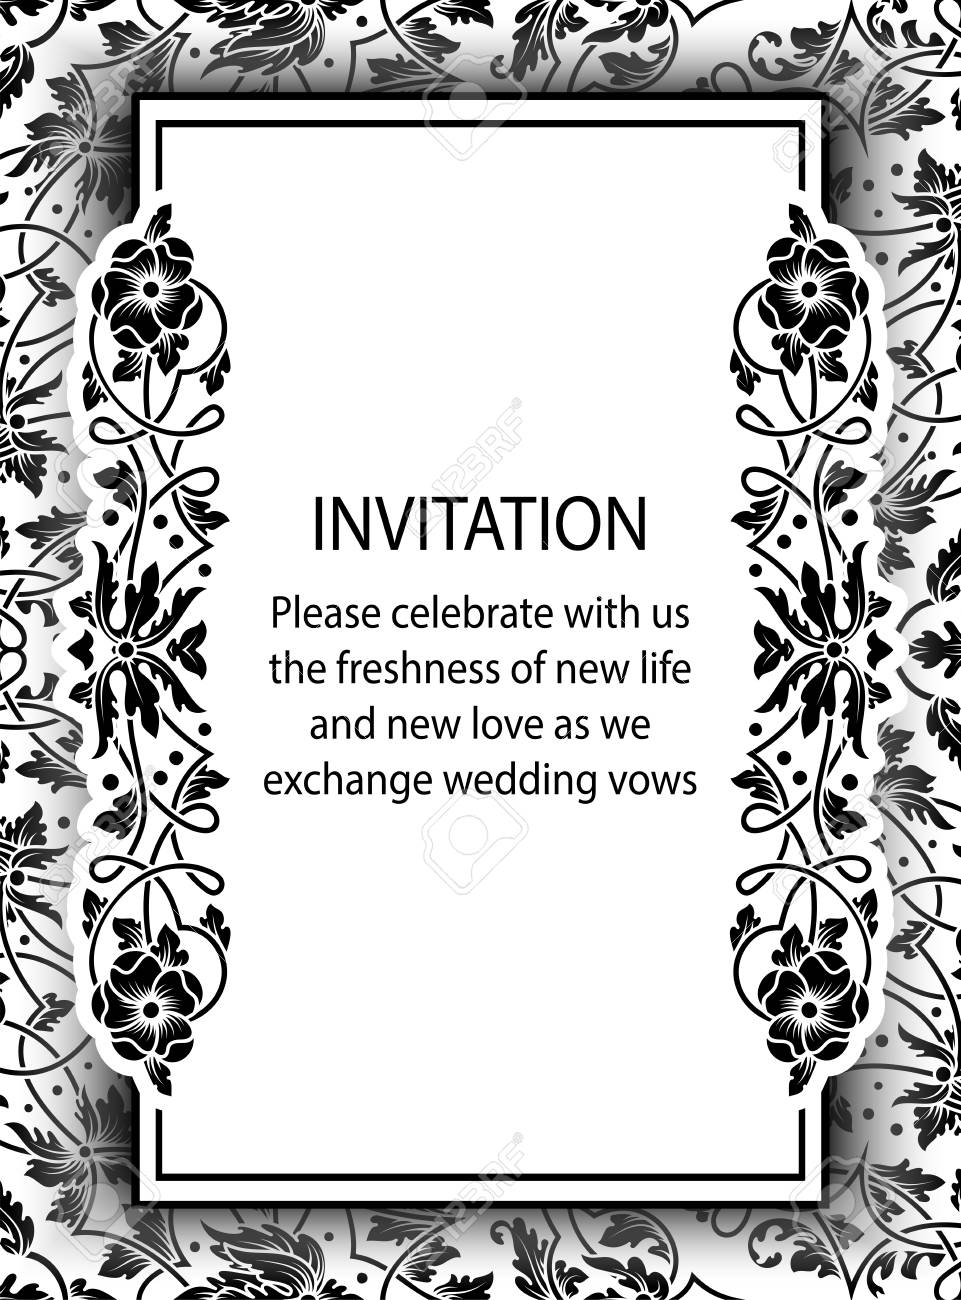 Floral Invitation Card With Antique Luxury Black And White Vintage